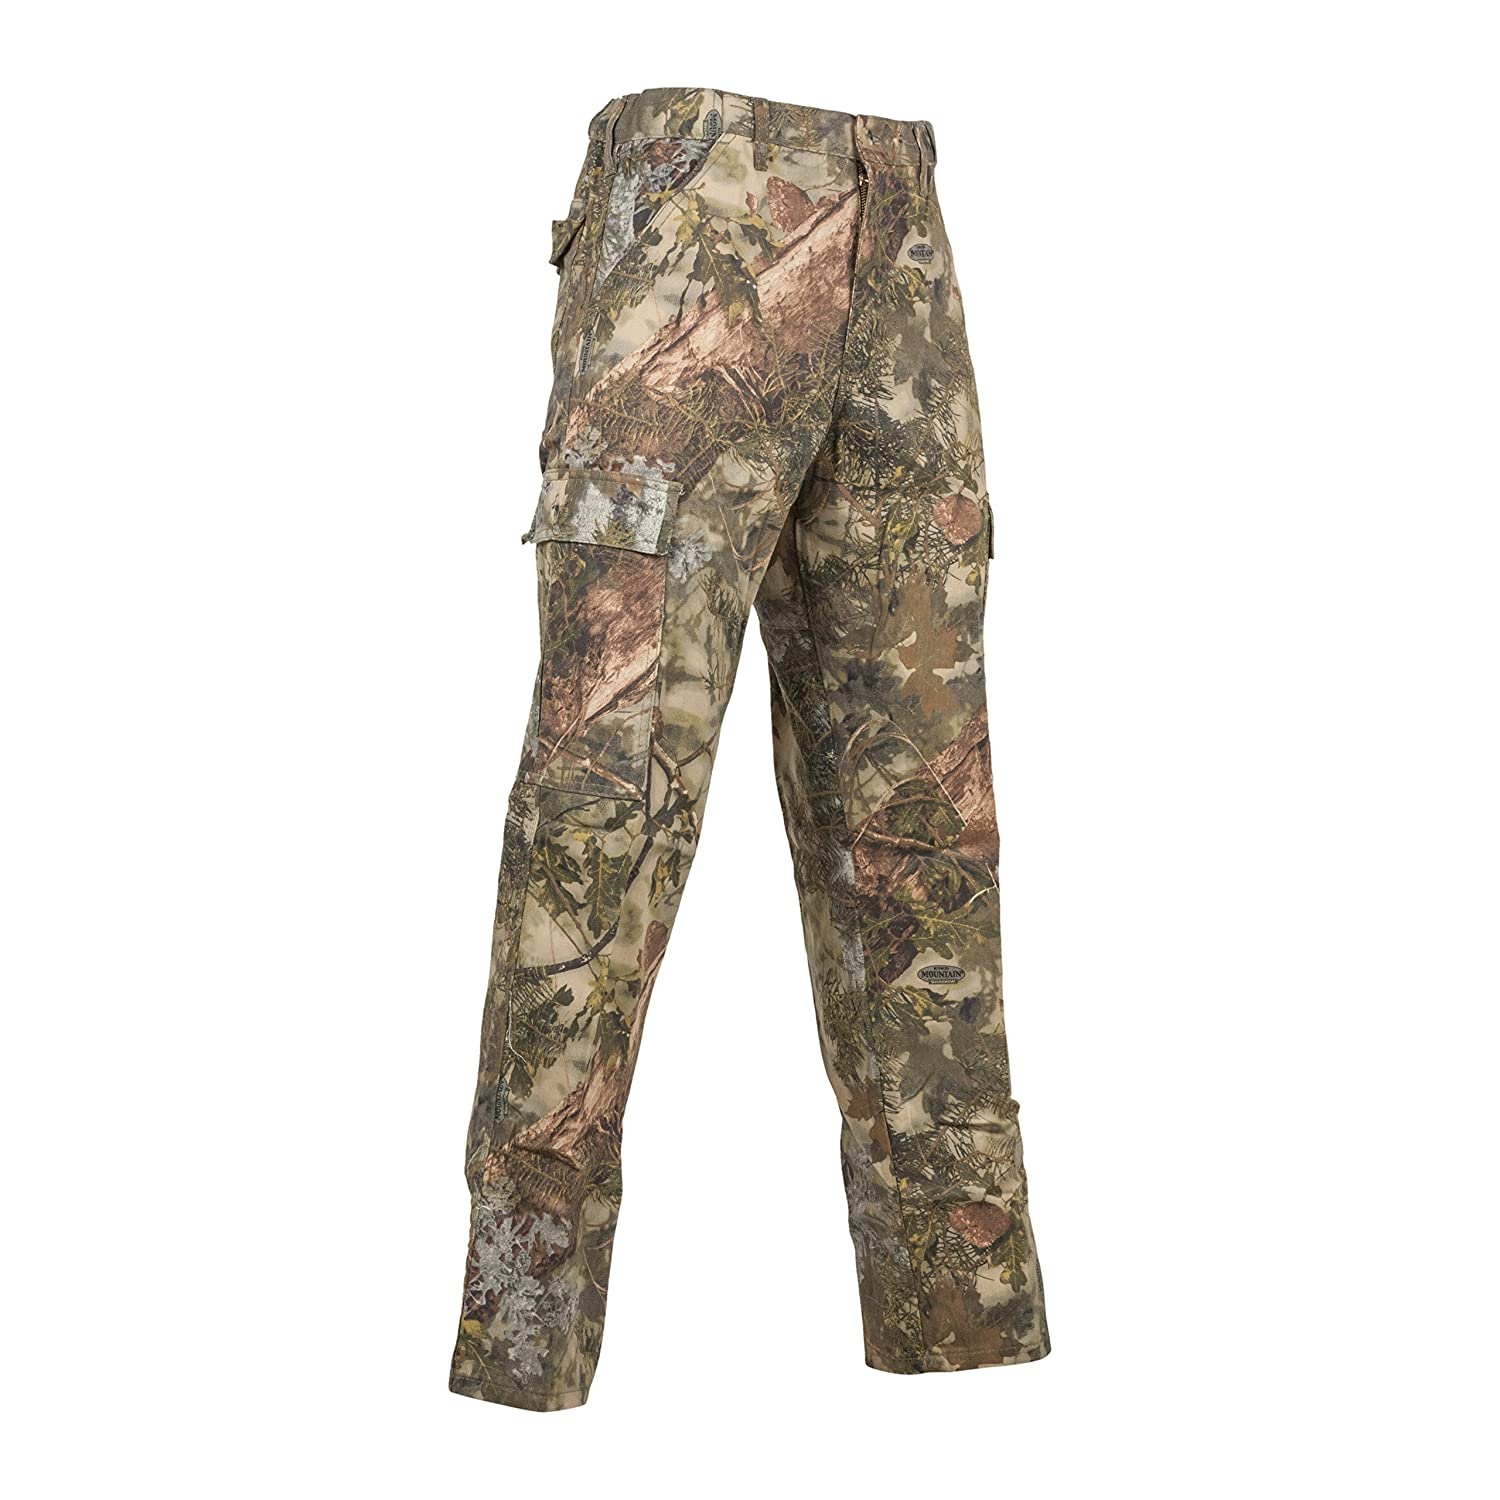 King's Camo Six Pocket Hunting Pants